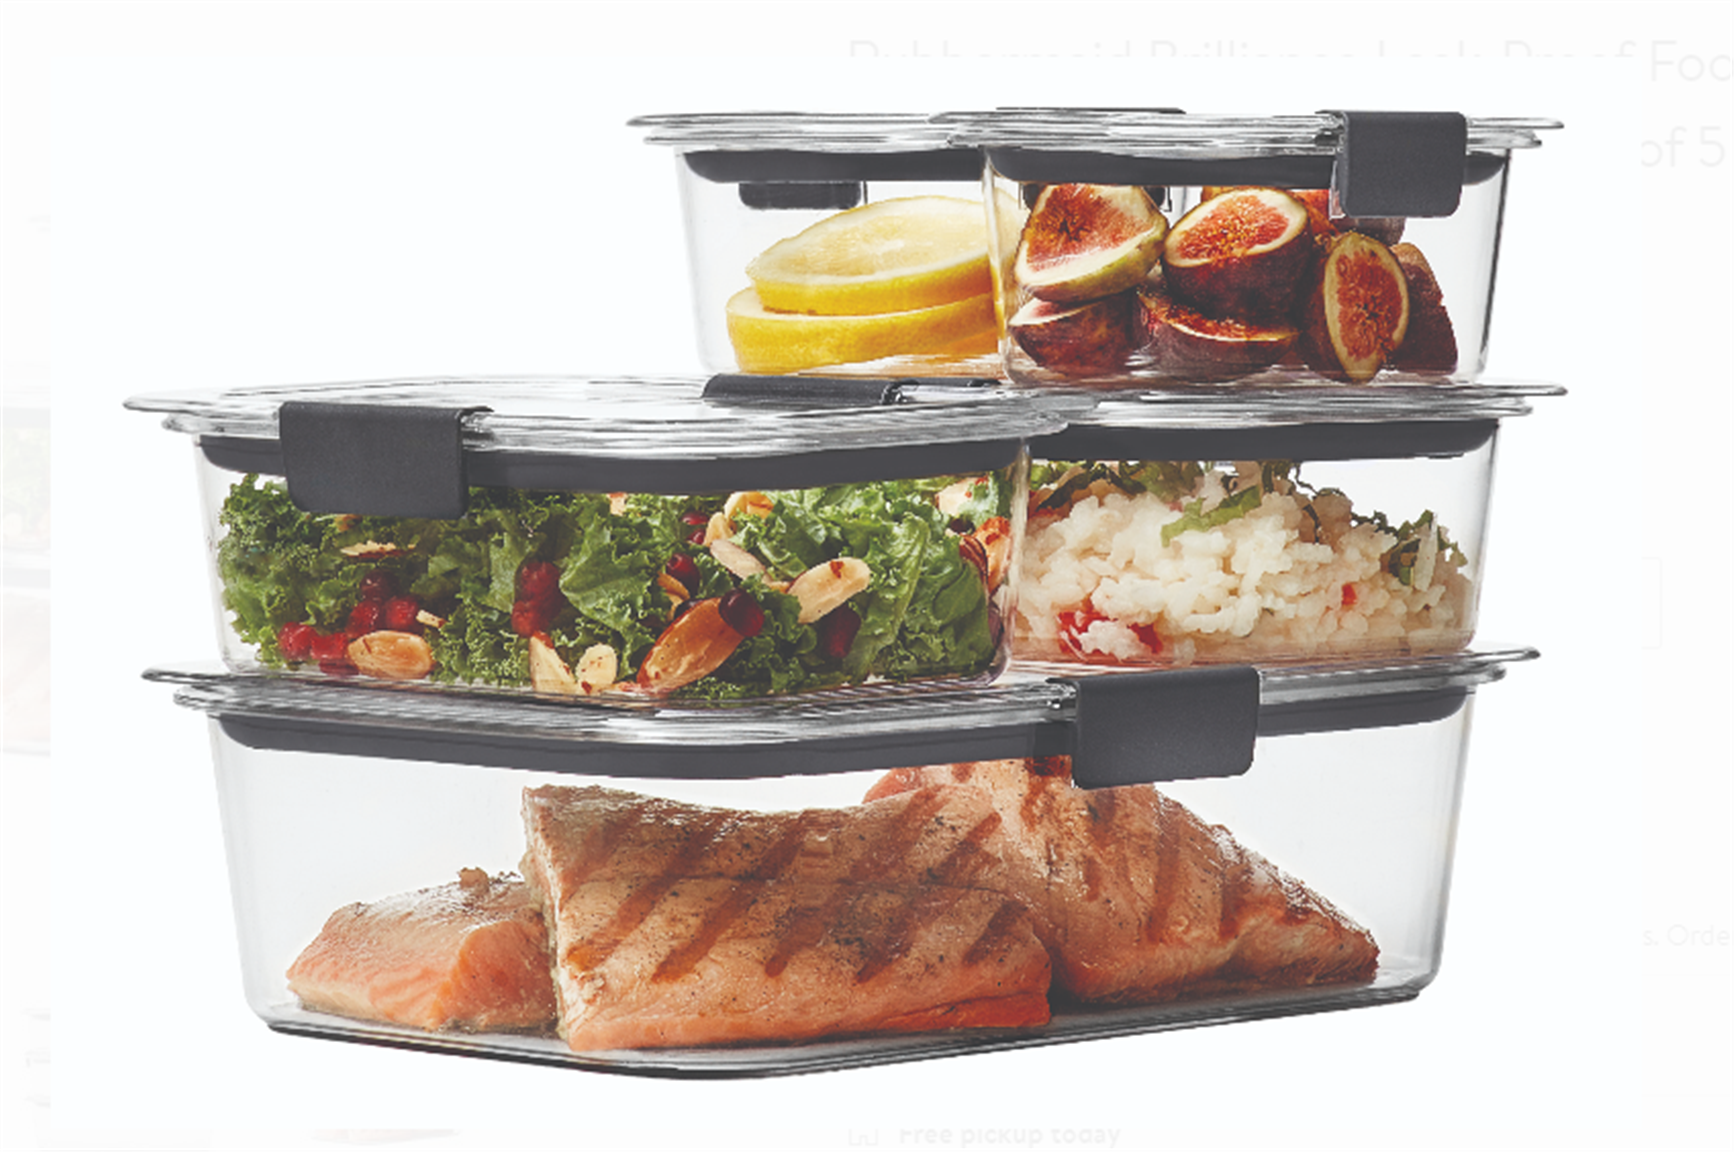 Walmart.com – 10 Piece Rubbermaid Brilliance Food Storage Container Set Only $13.76, Reg $22.98 + Free Store Pickup!